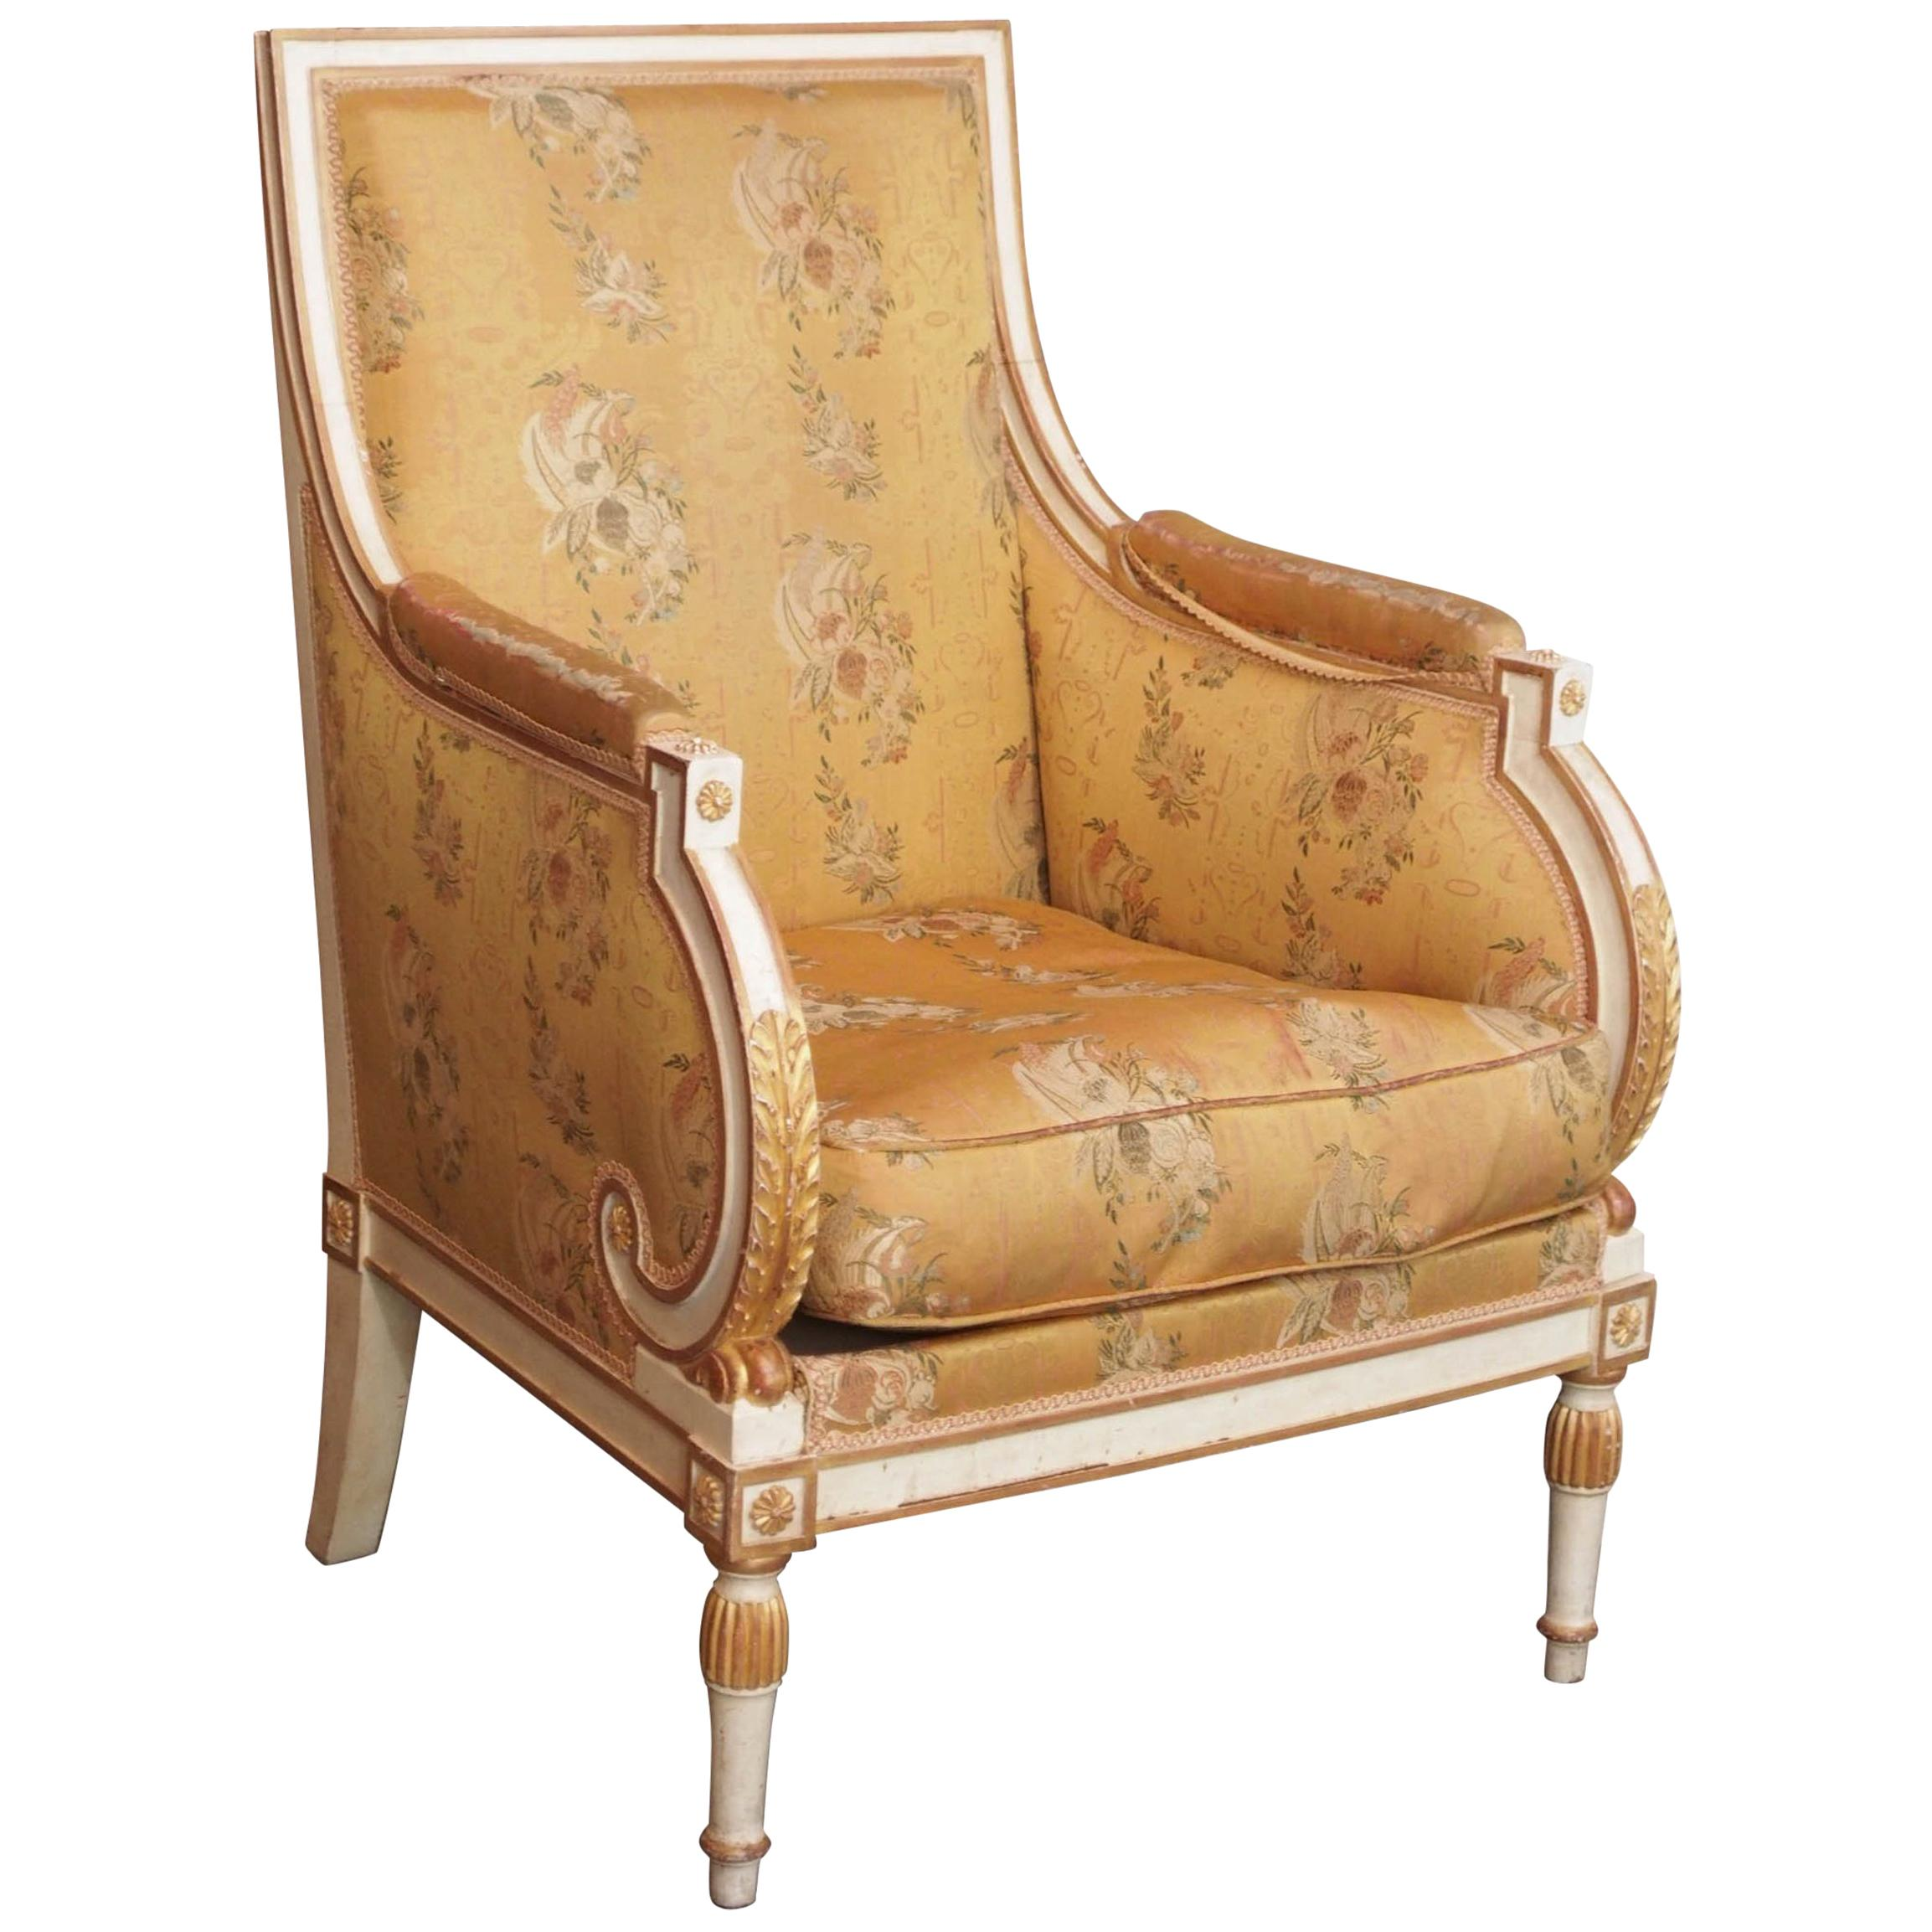 French Painted Upholstered Louis XVI Style Chair, circa 1920